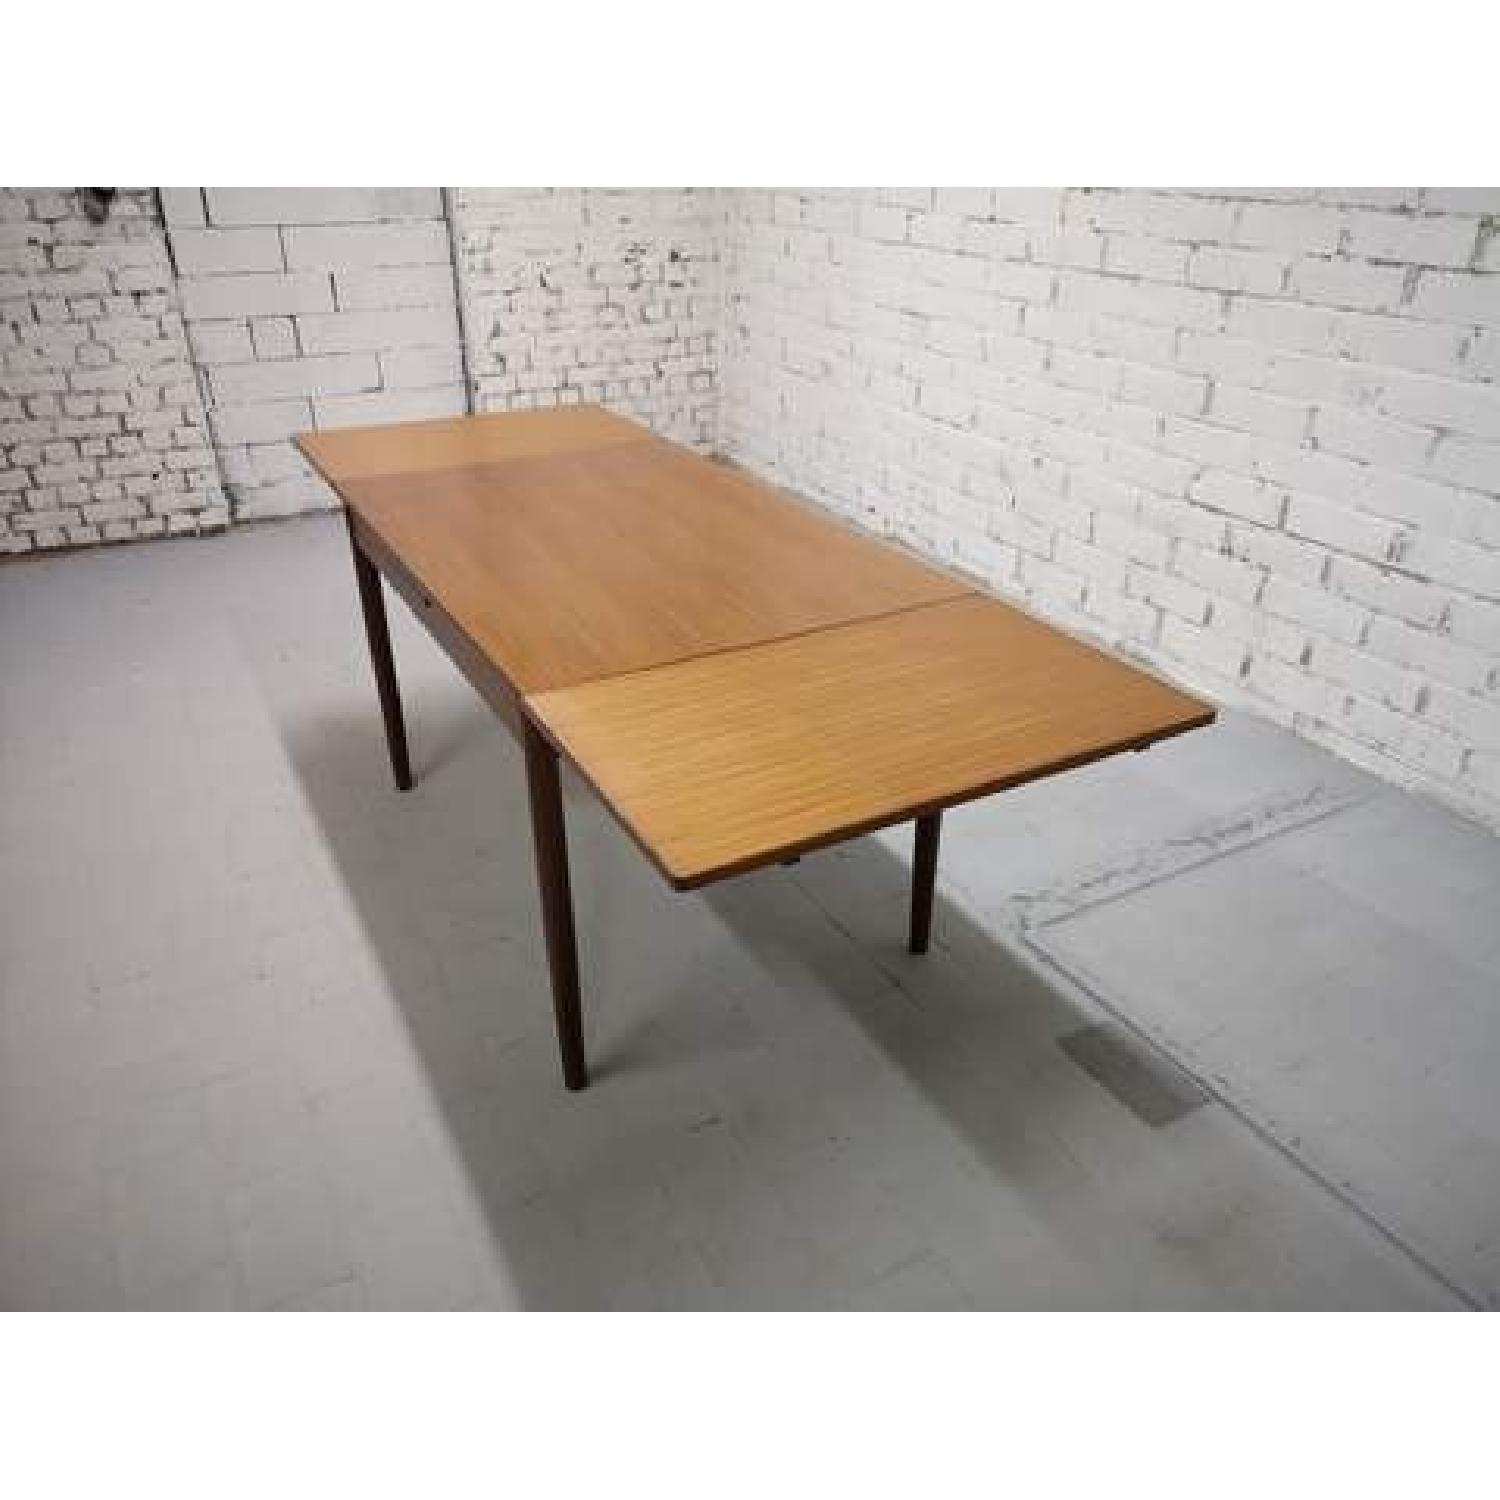 Mid-Century Modern Danish Extendable Draw Leaf Dining Table-5